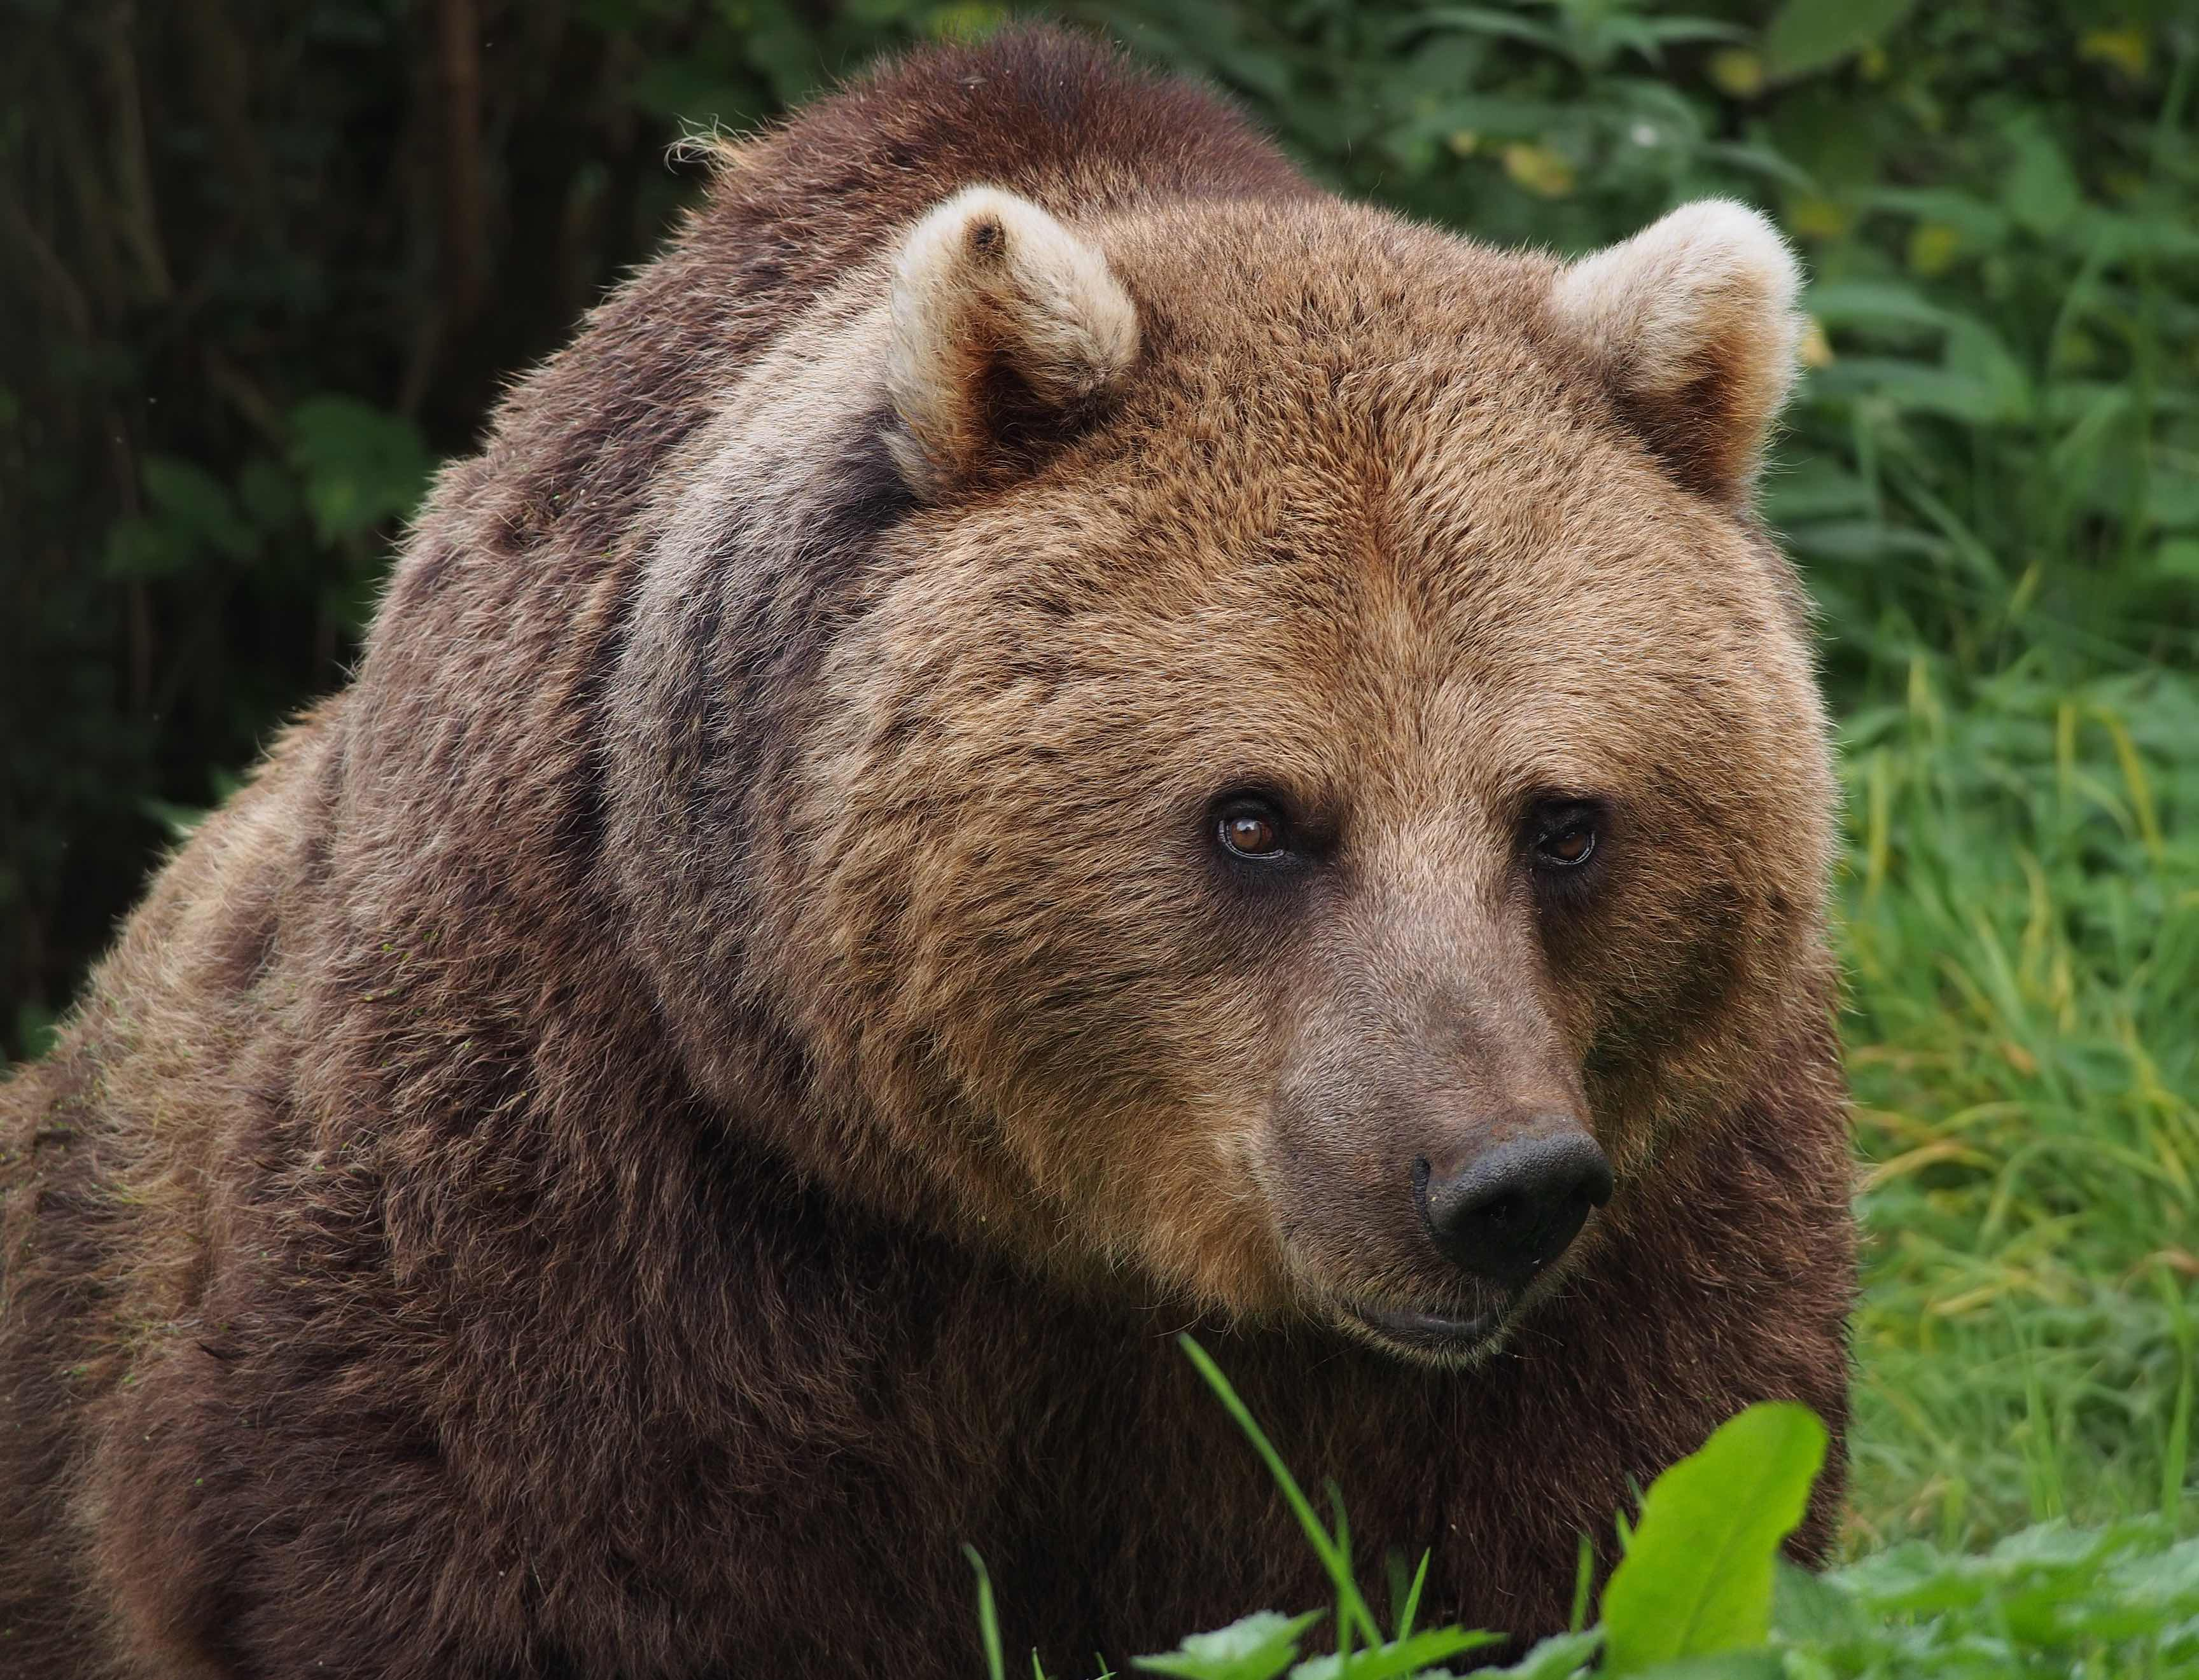 Brown bears frequently come into conflict with people in Romania. Photo by Francis C. Franklin, licensed under CC-BY-SA-3.0.